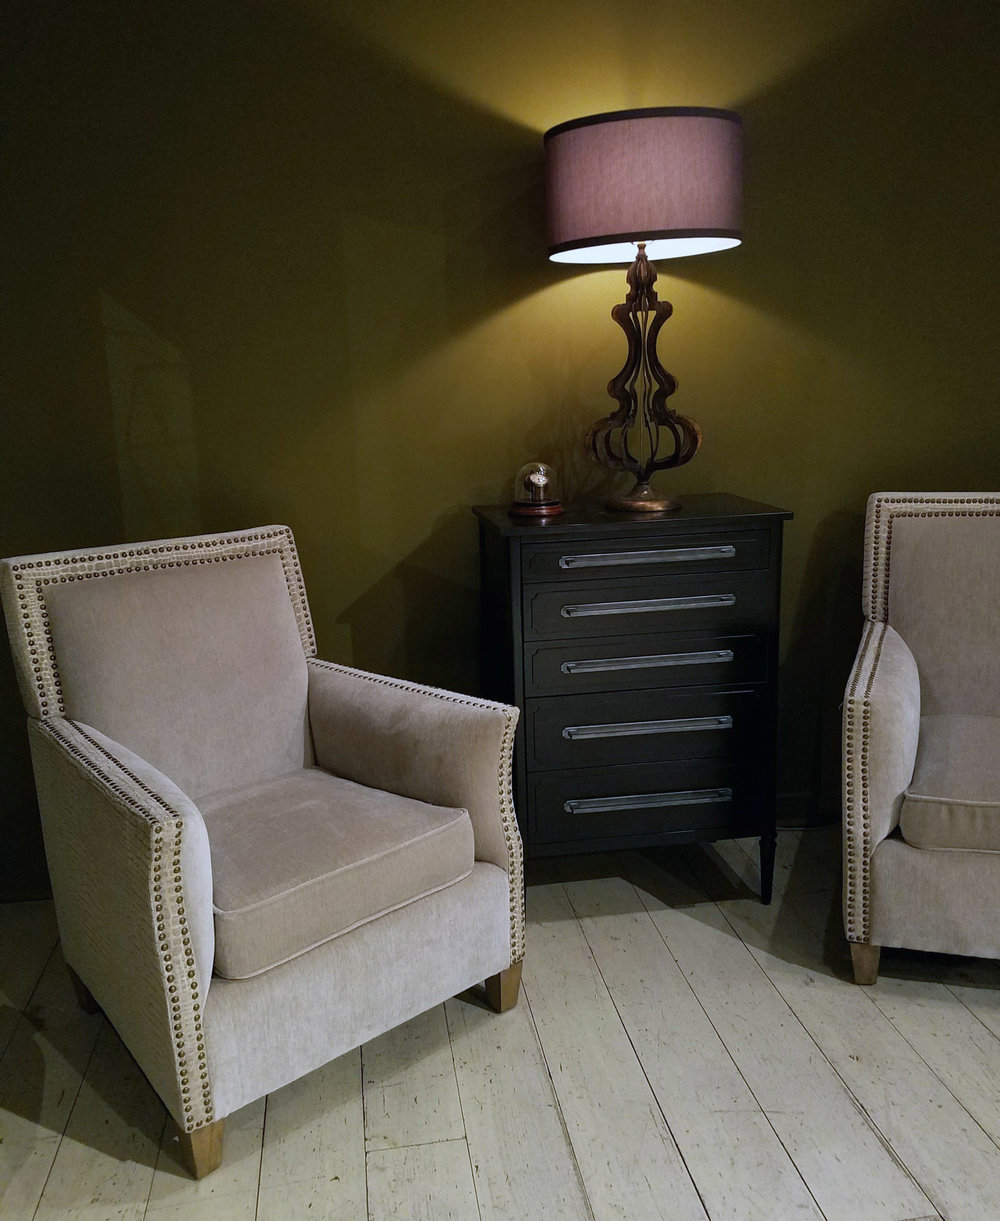 Linvilles chair 2.jpg